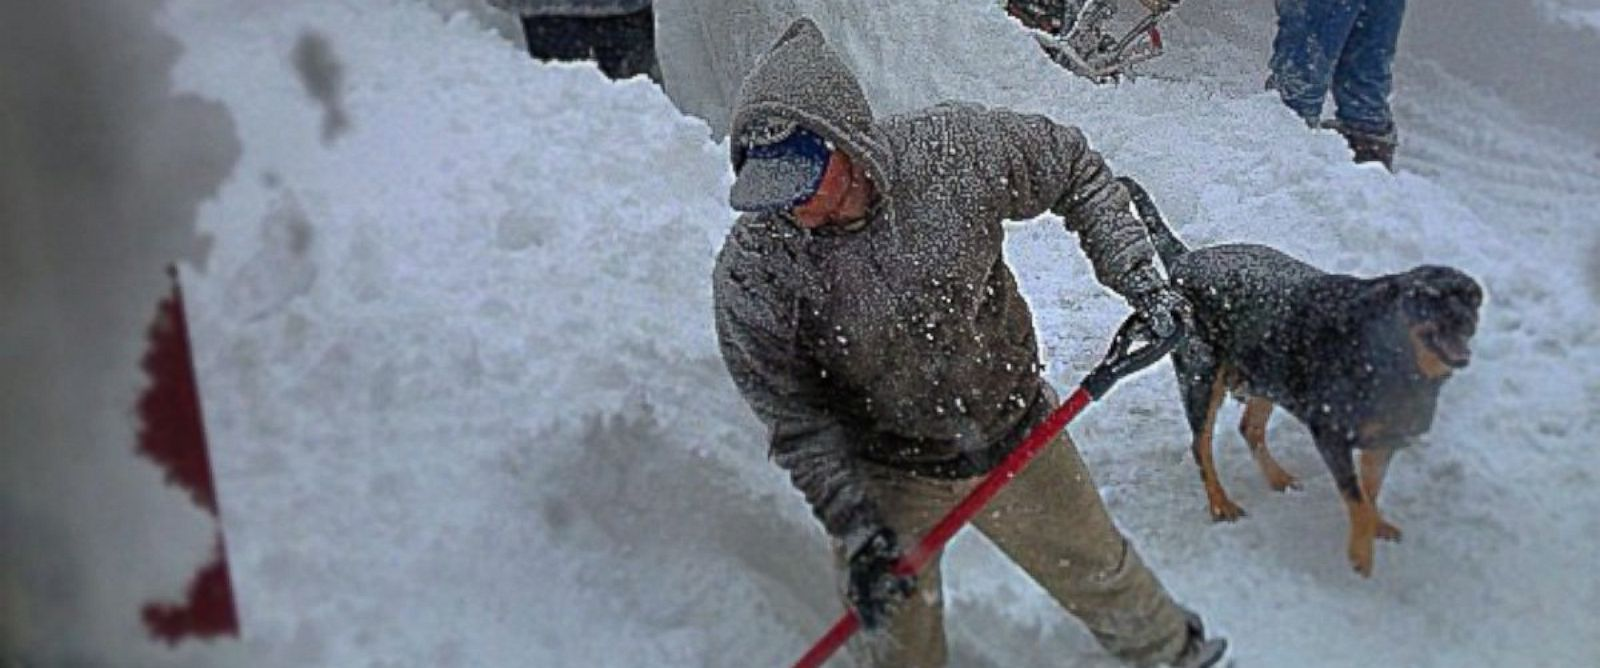 "PHOTO: Men shovel snow in this image posted to Instagram on Nov. 18, 2014 with the text, ""The love hate relationship with the snow this morning haha #buffalo #newyork #blizzard."""